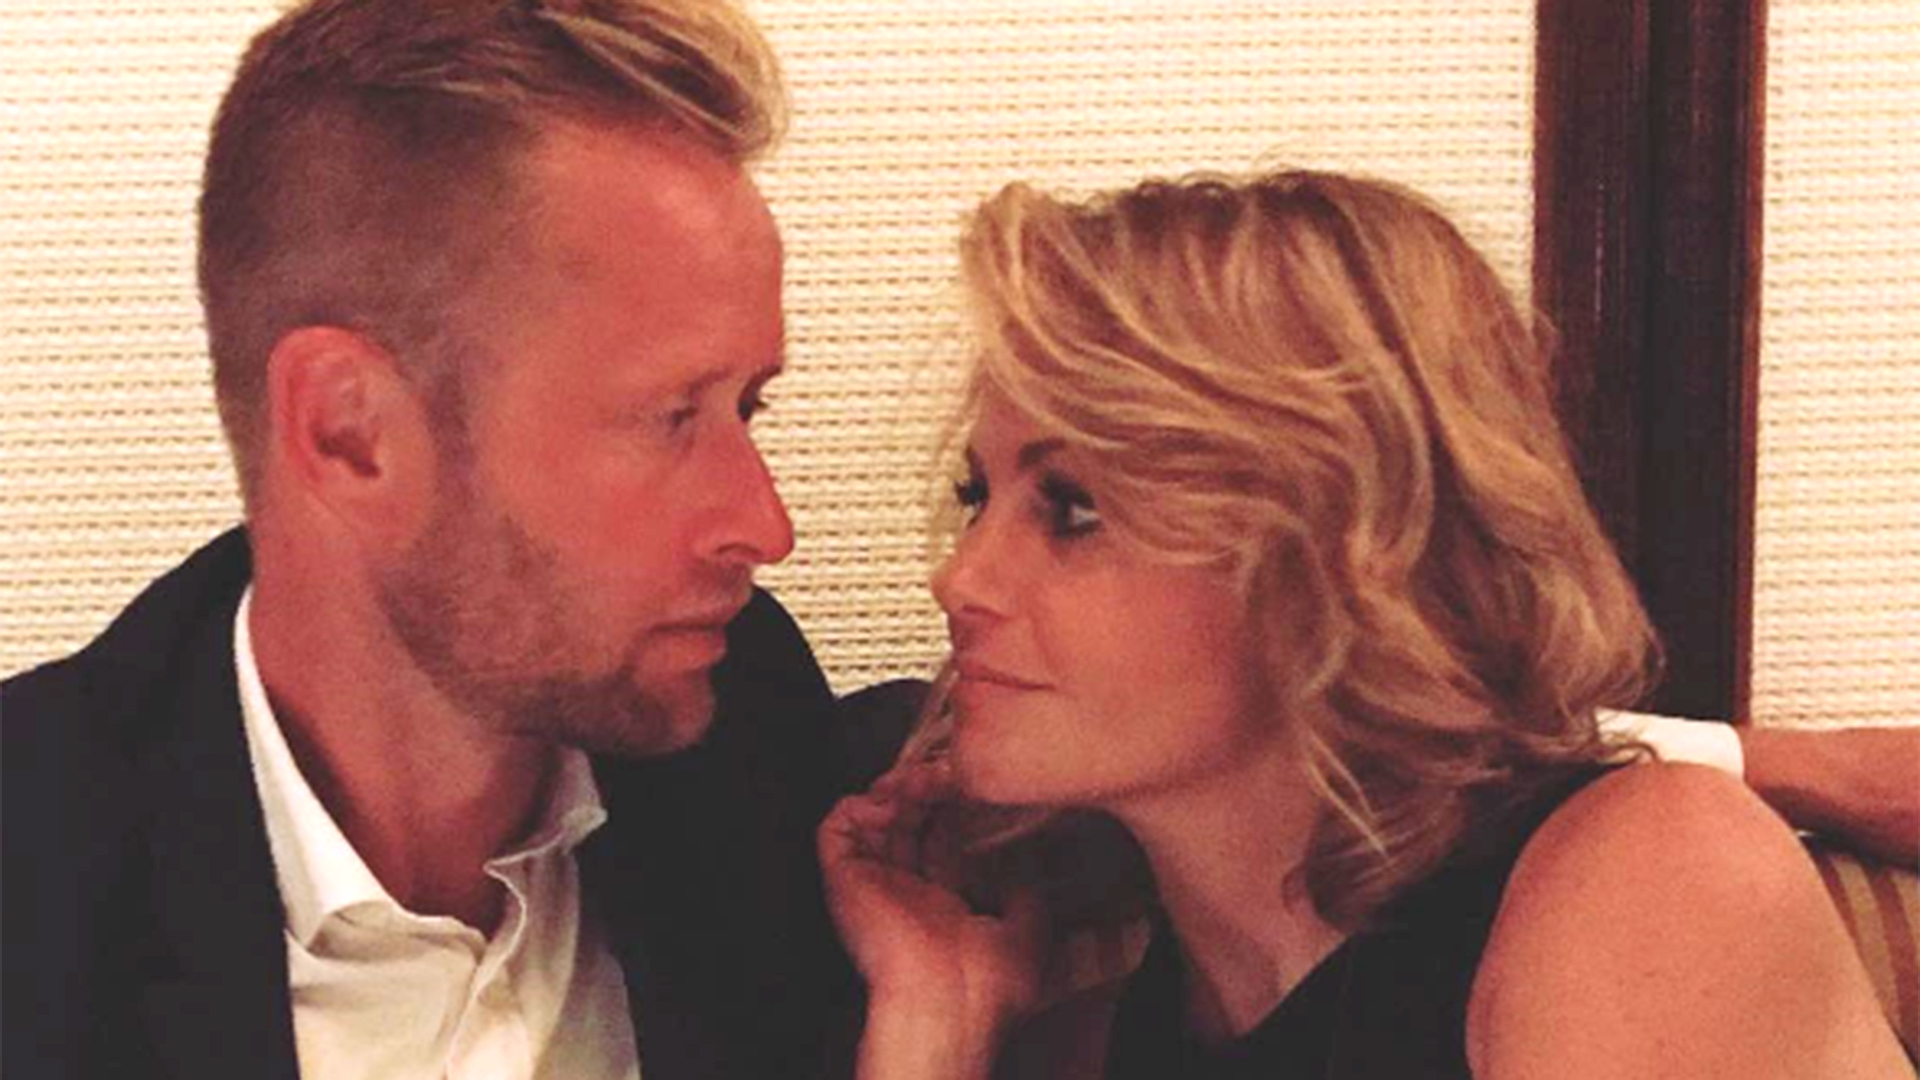 Candace Cameron Bure And Her Husband >> Candace Cameron Bure shares sweet birthday messages for Valeri Bure - TODAY.com